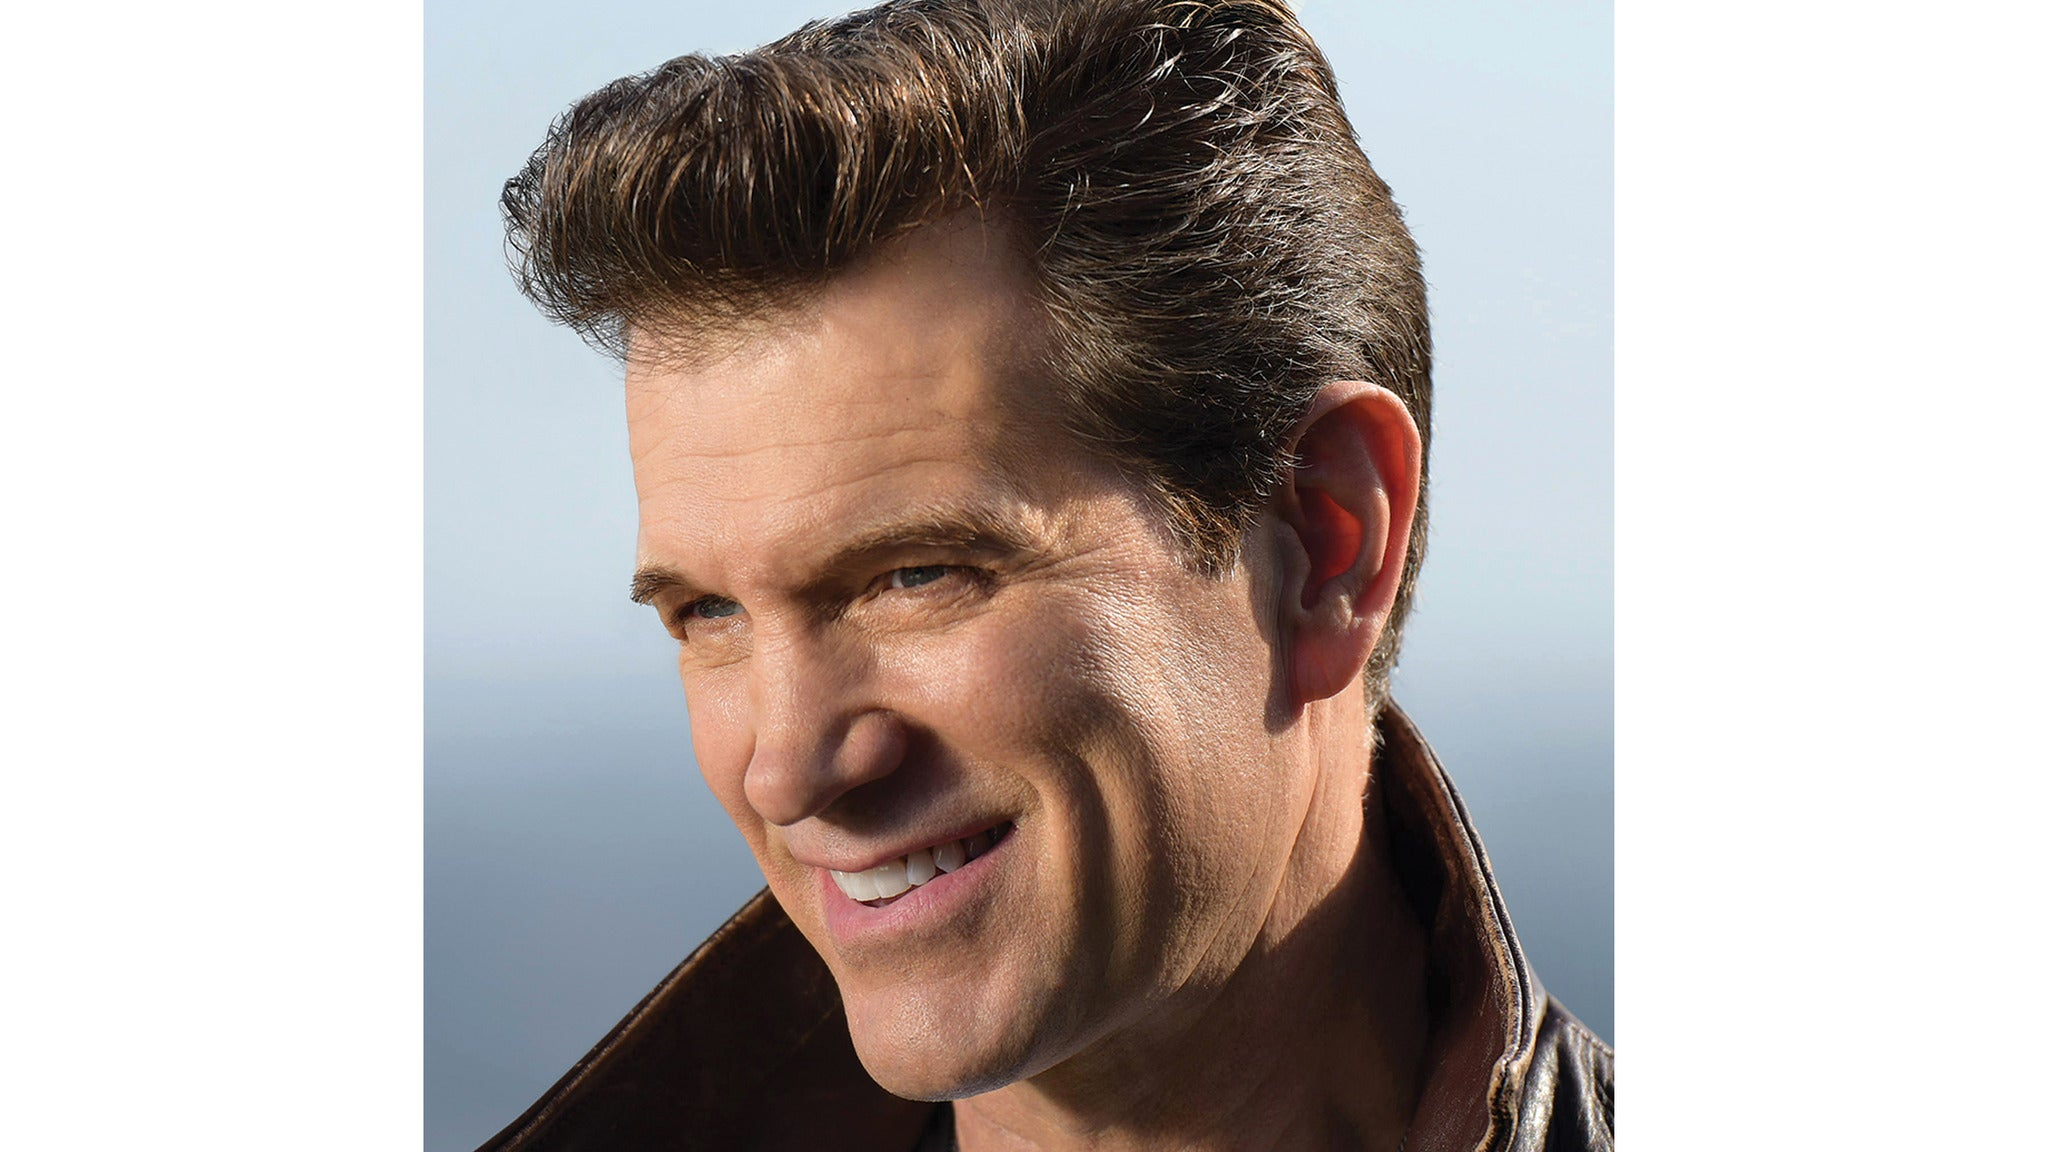 Chris Isaak - Meet & Greet Packages